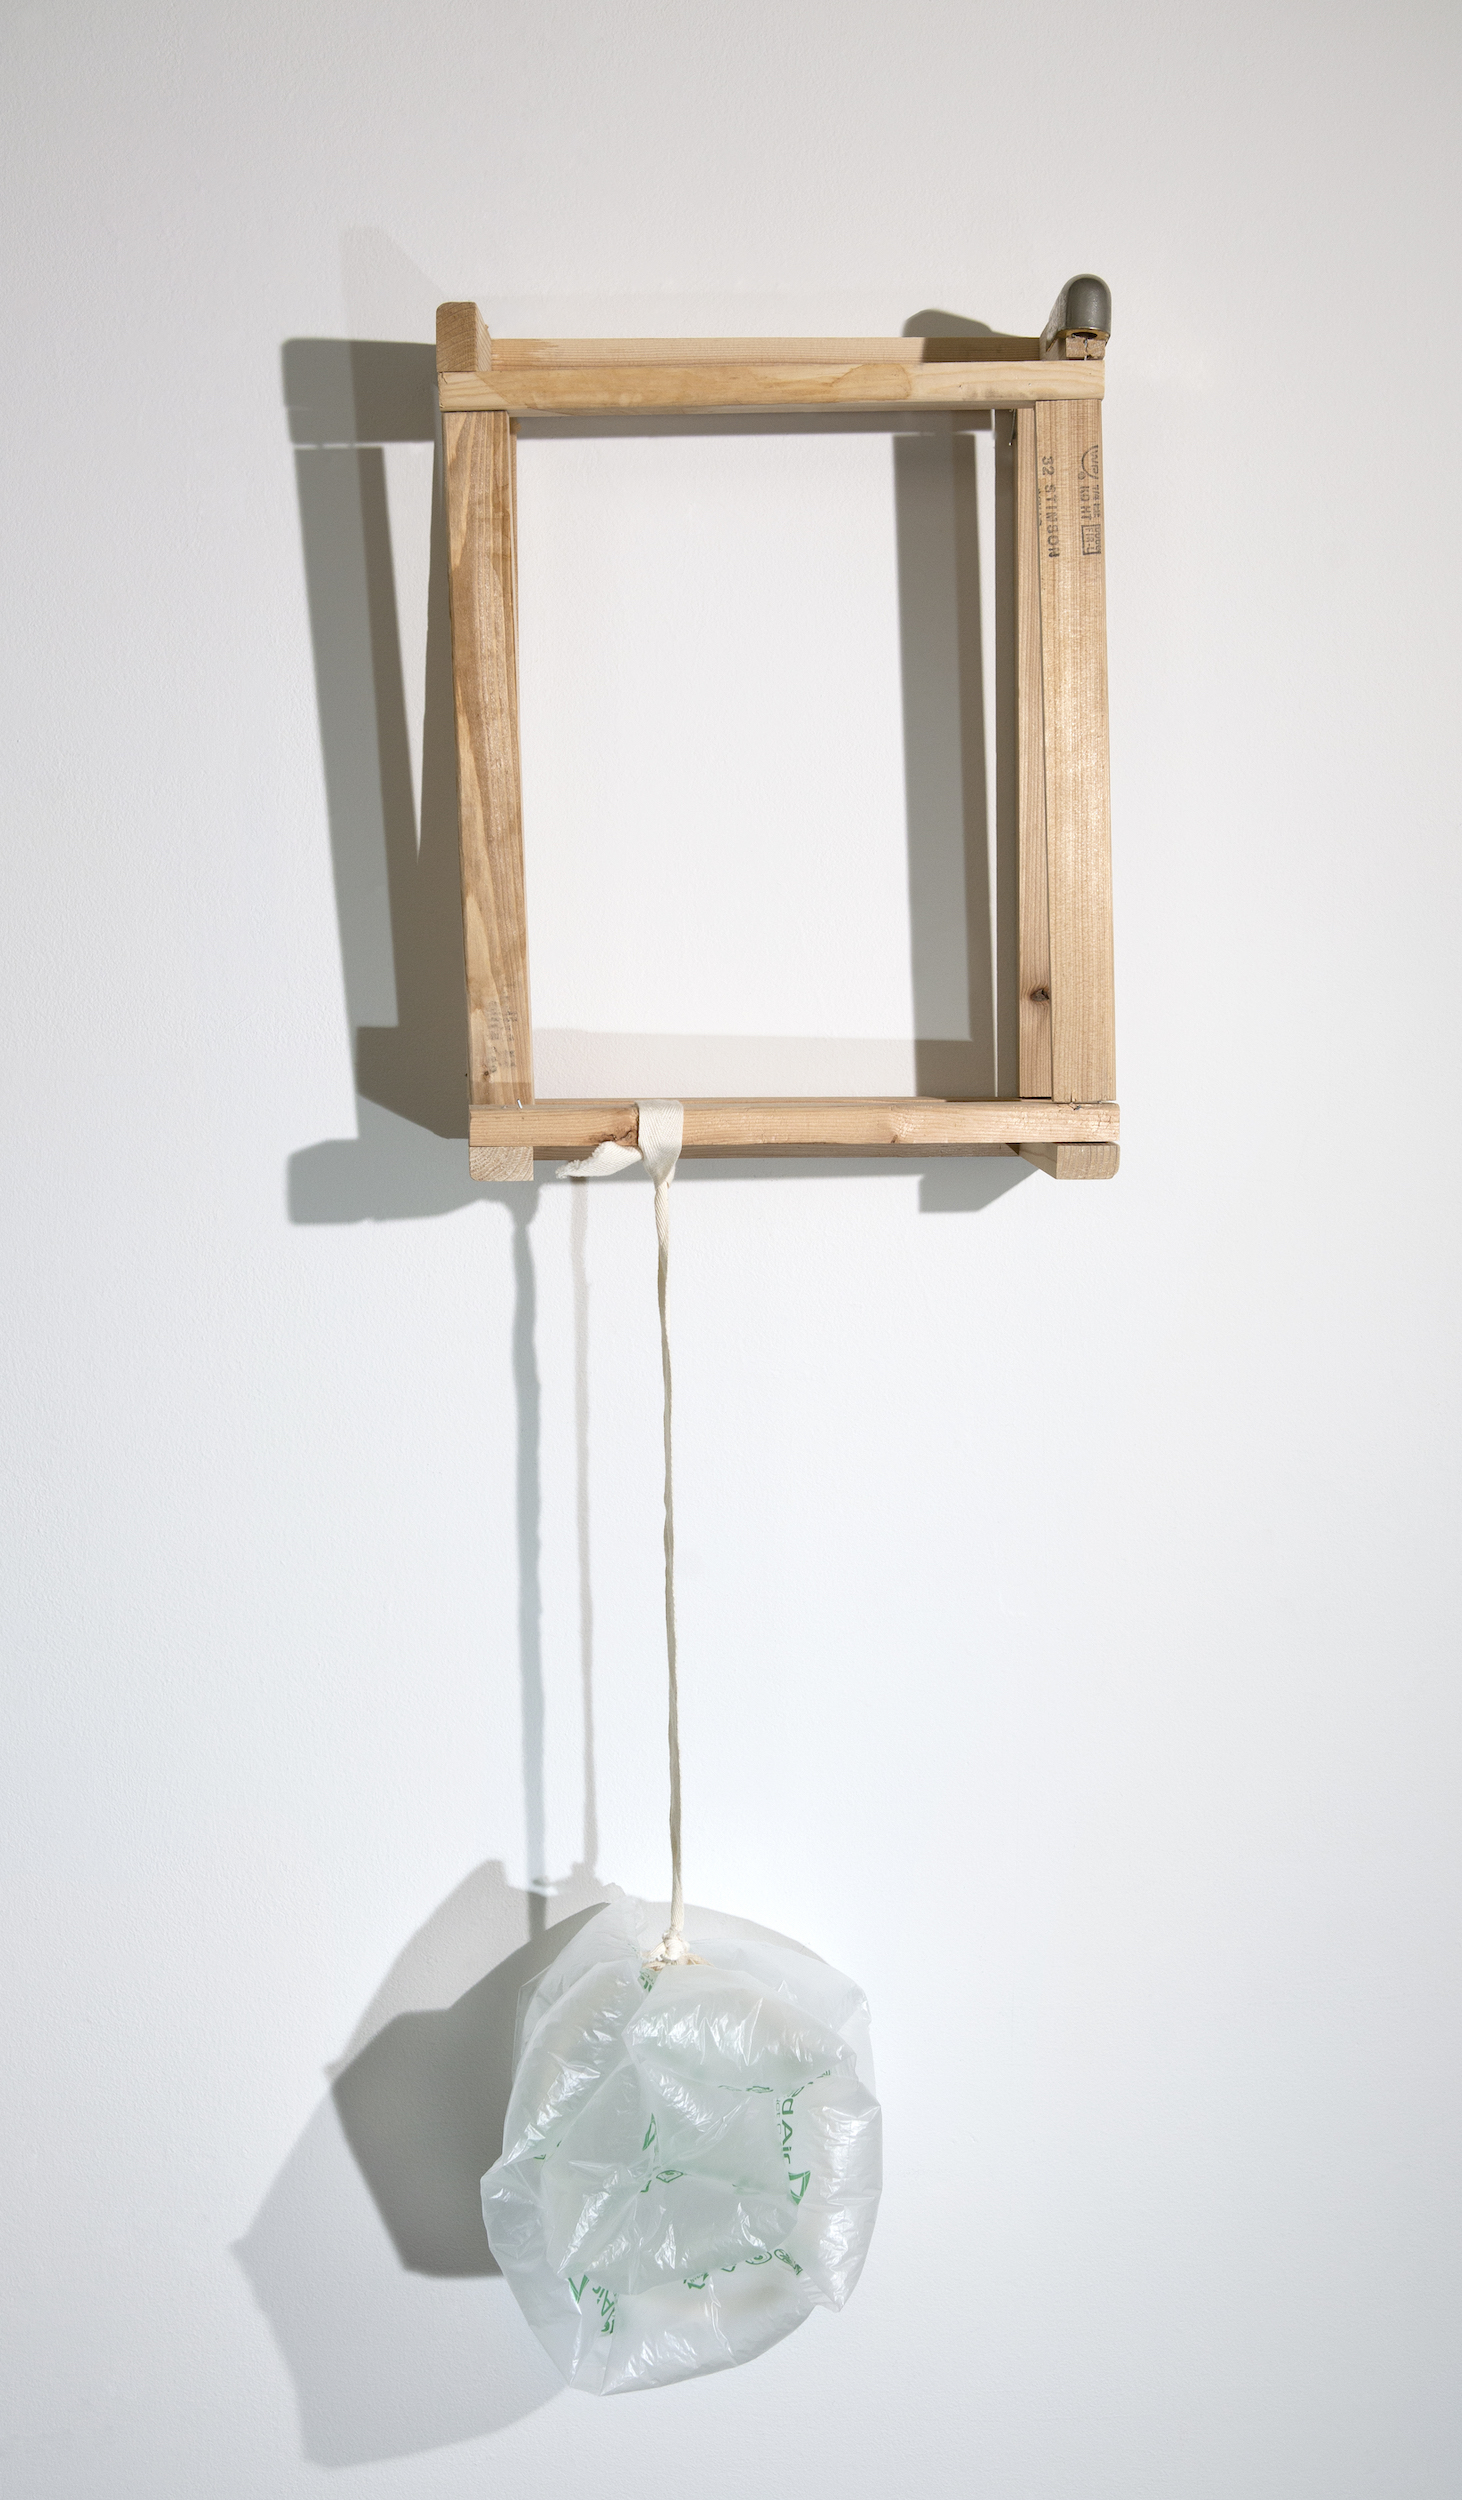 The burden    Found wooden frame and metal cap, used canvas tie and air bubble cushion, and T-pin  Approx. 39 x 13 x 10 inches  2018